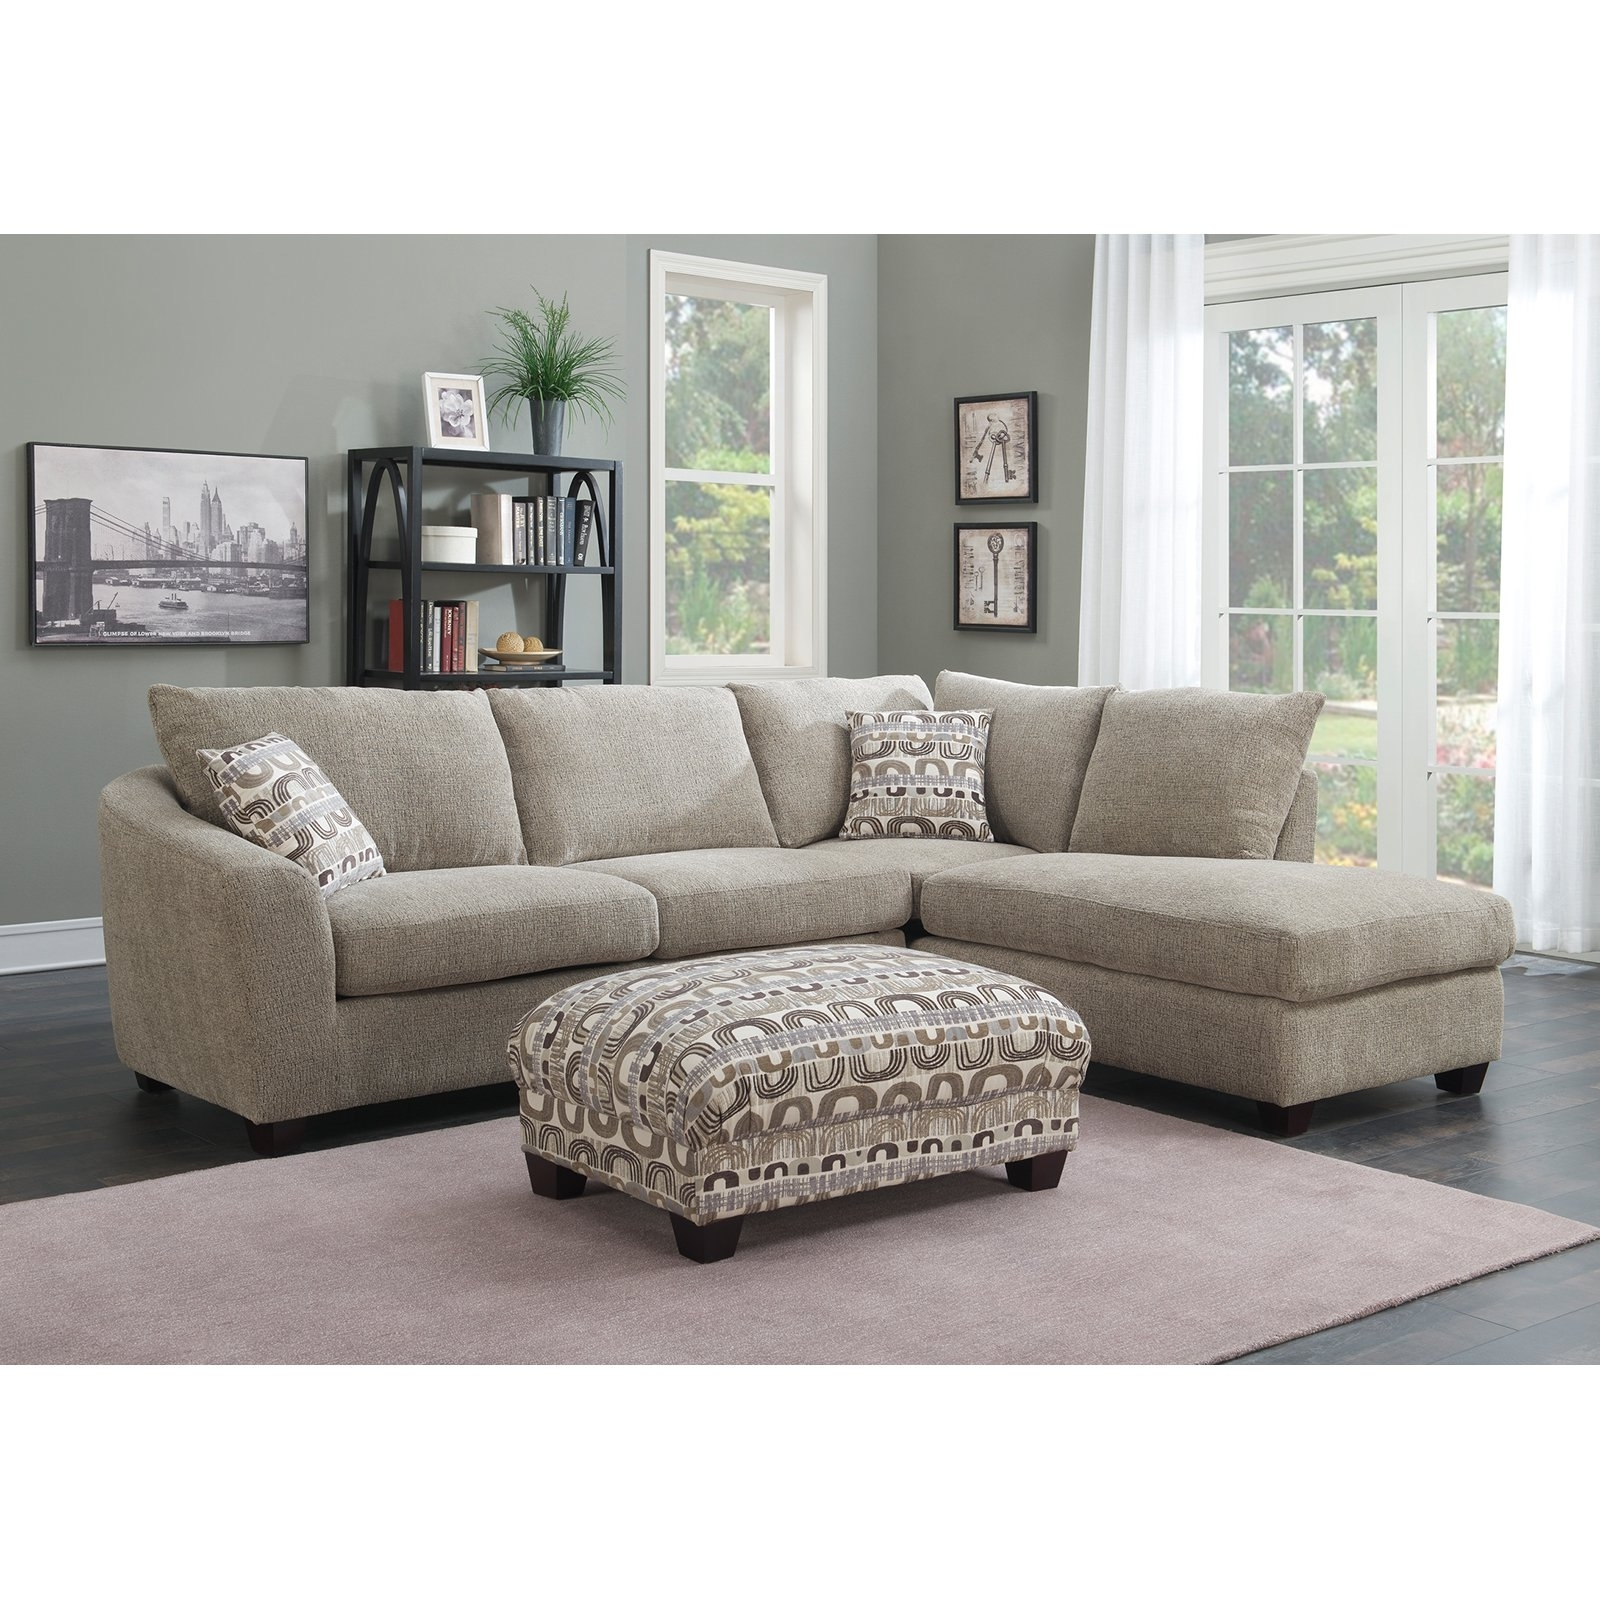 2 Piece Sectional With Chaise – Tidex Inside Arrowmask 2 Piece Sectionals With Laf Chaise (View 18 of 25)